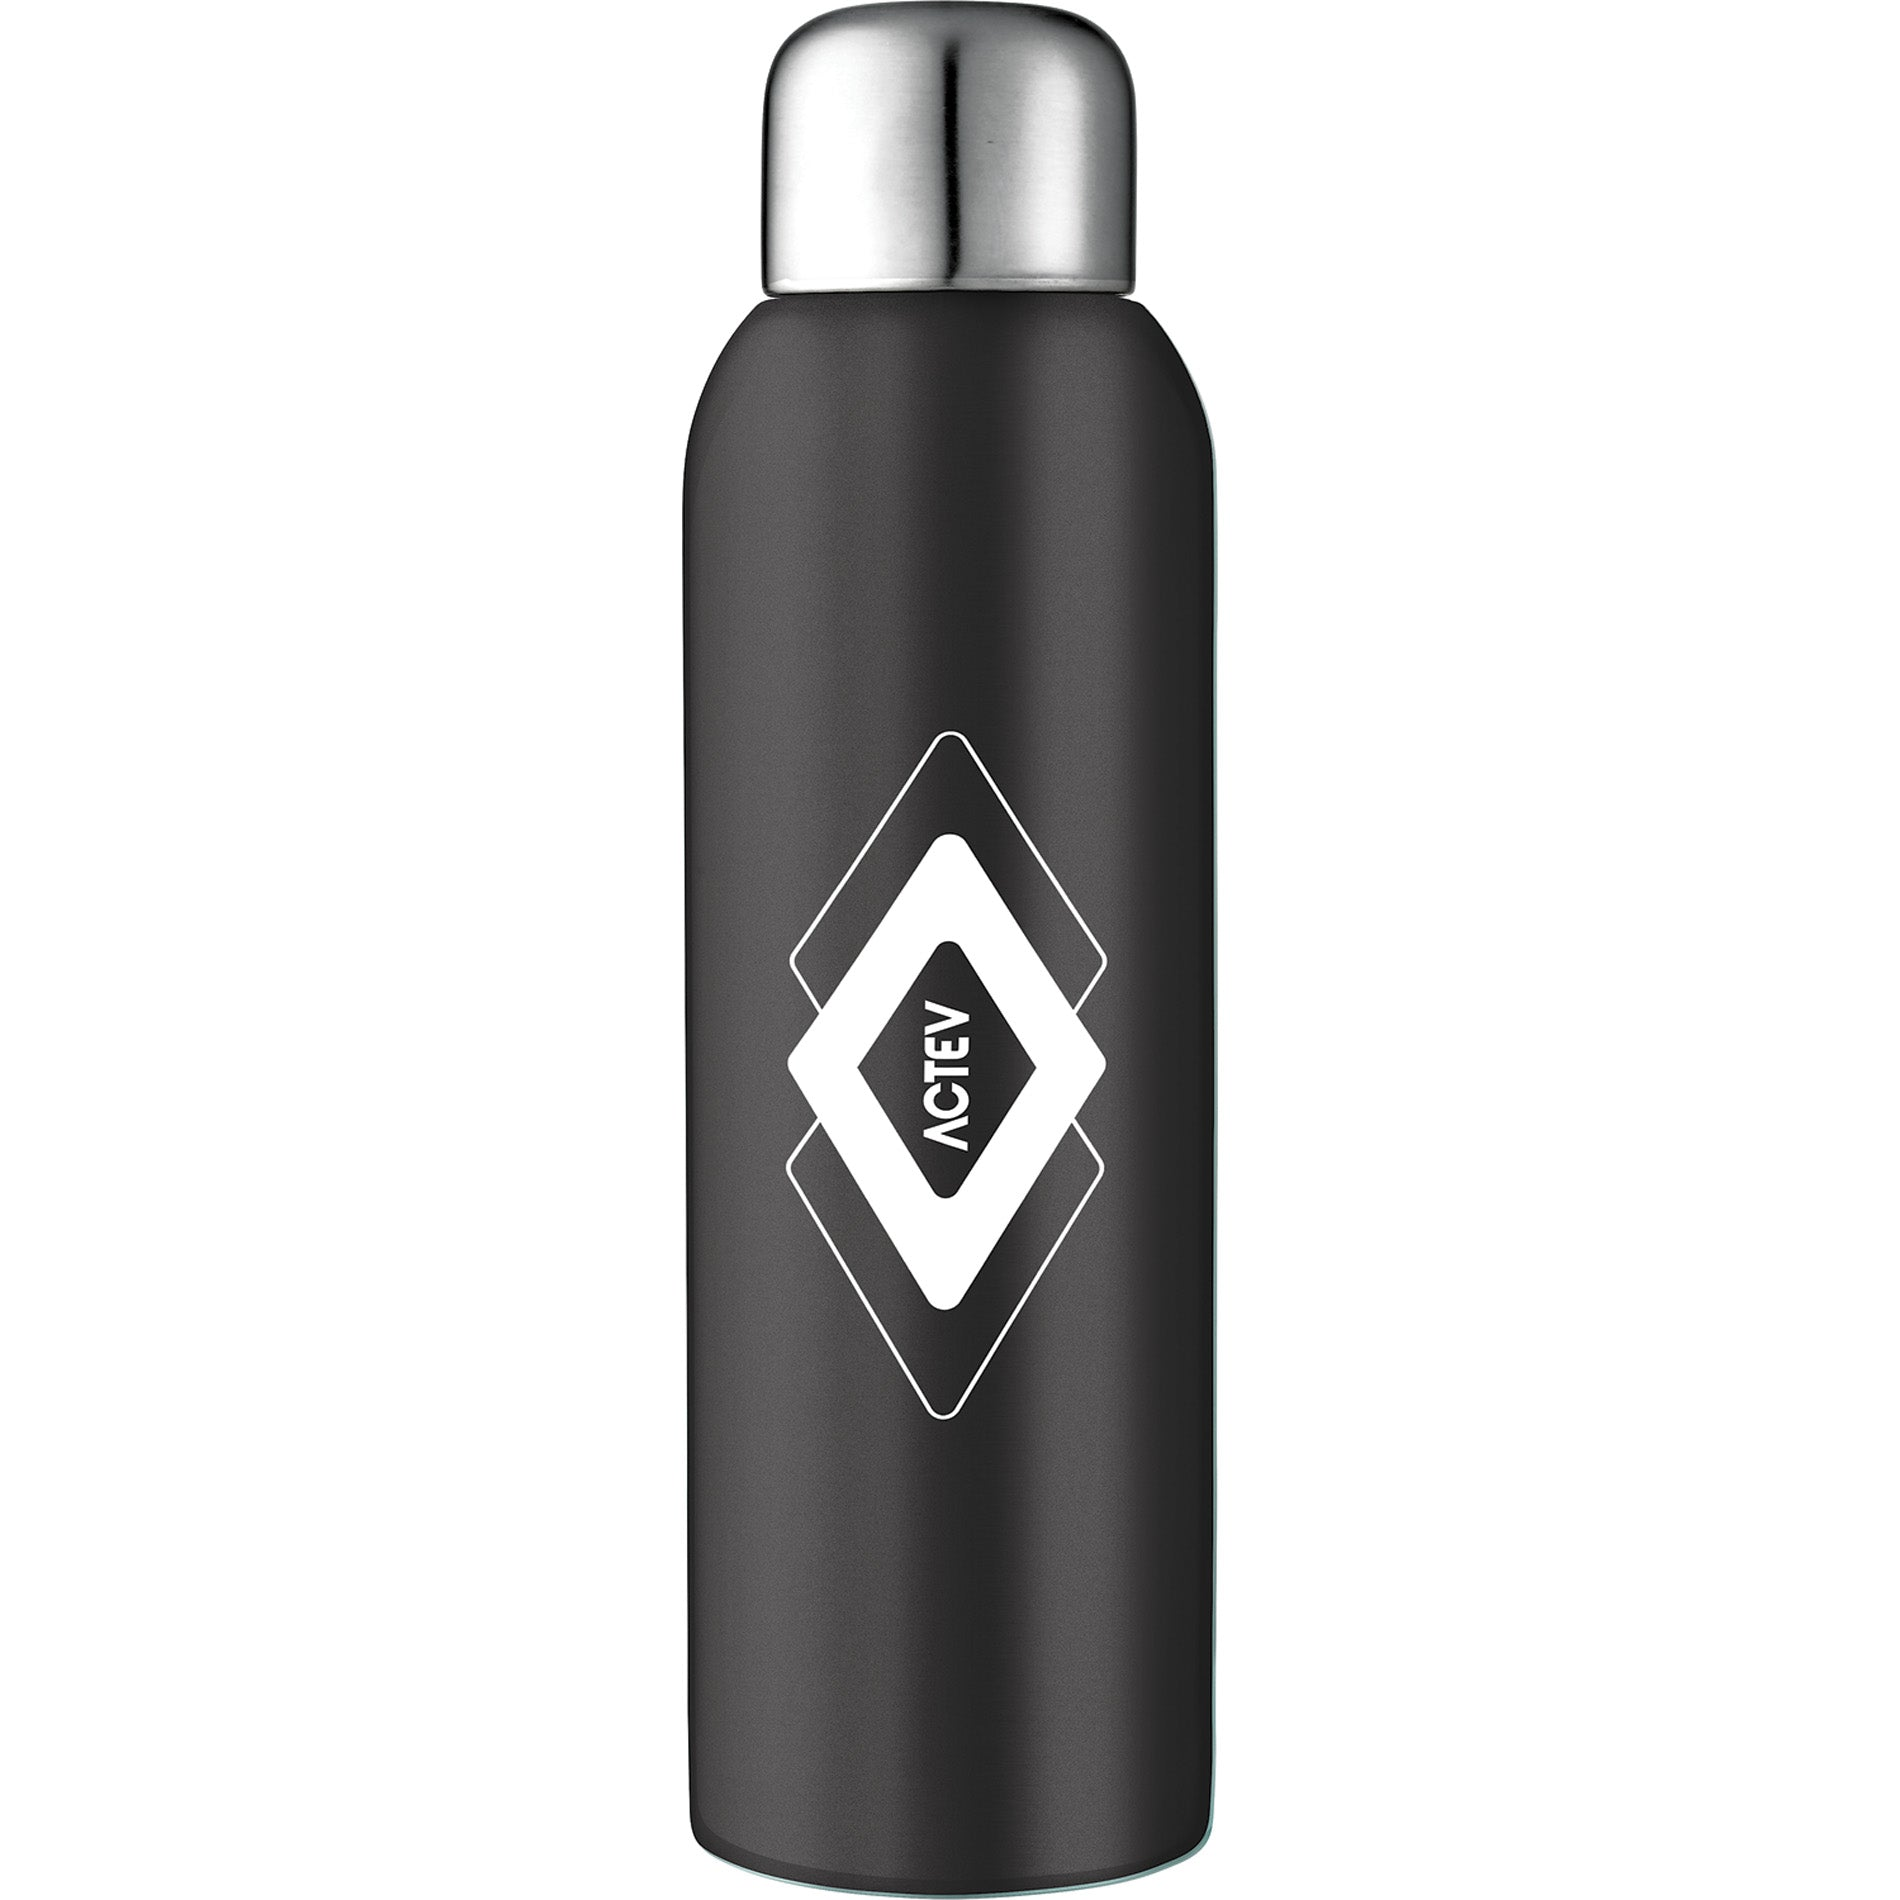 BULLET GUZZLE 28OZ STAINLESS SPORTS BOTTLE